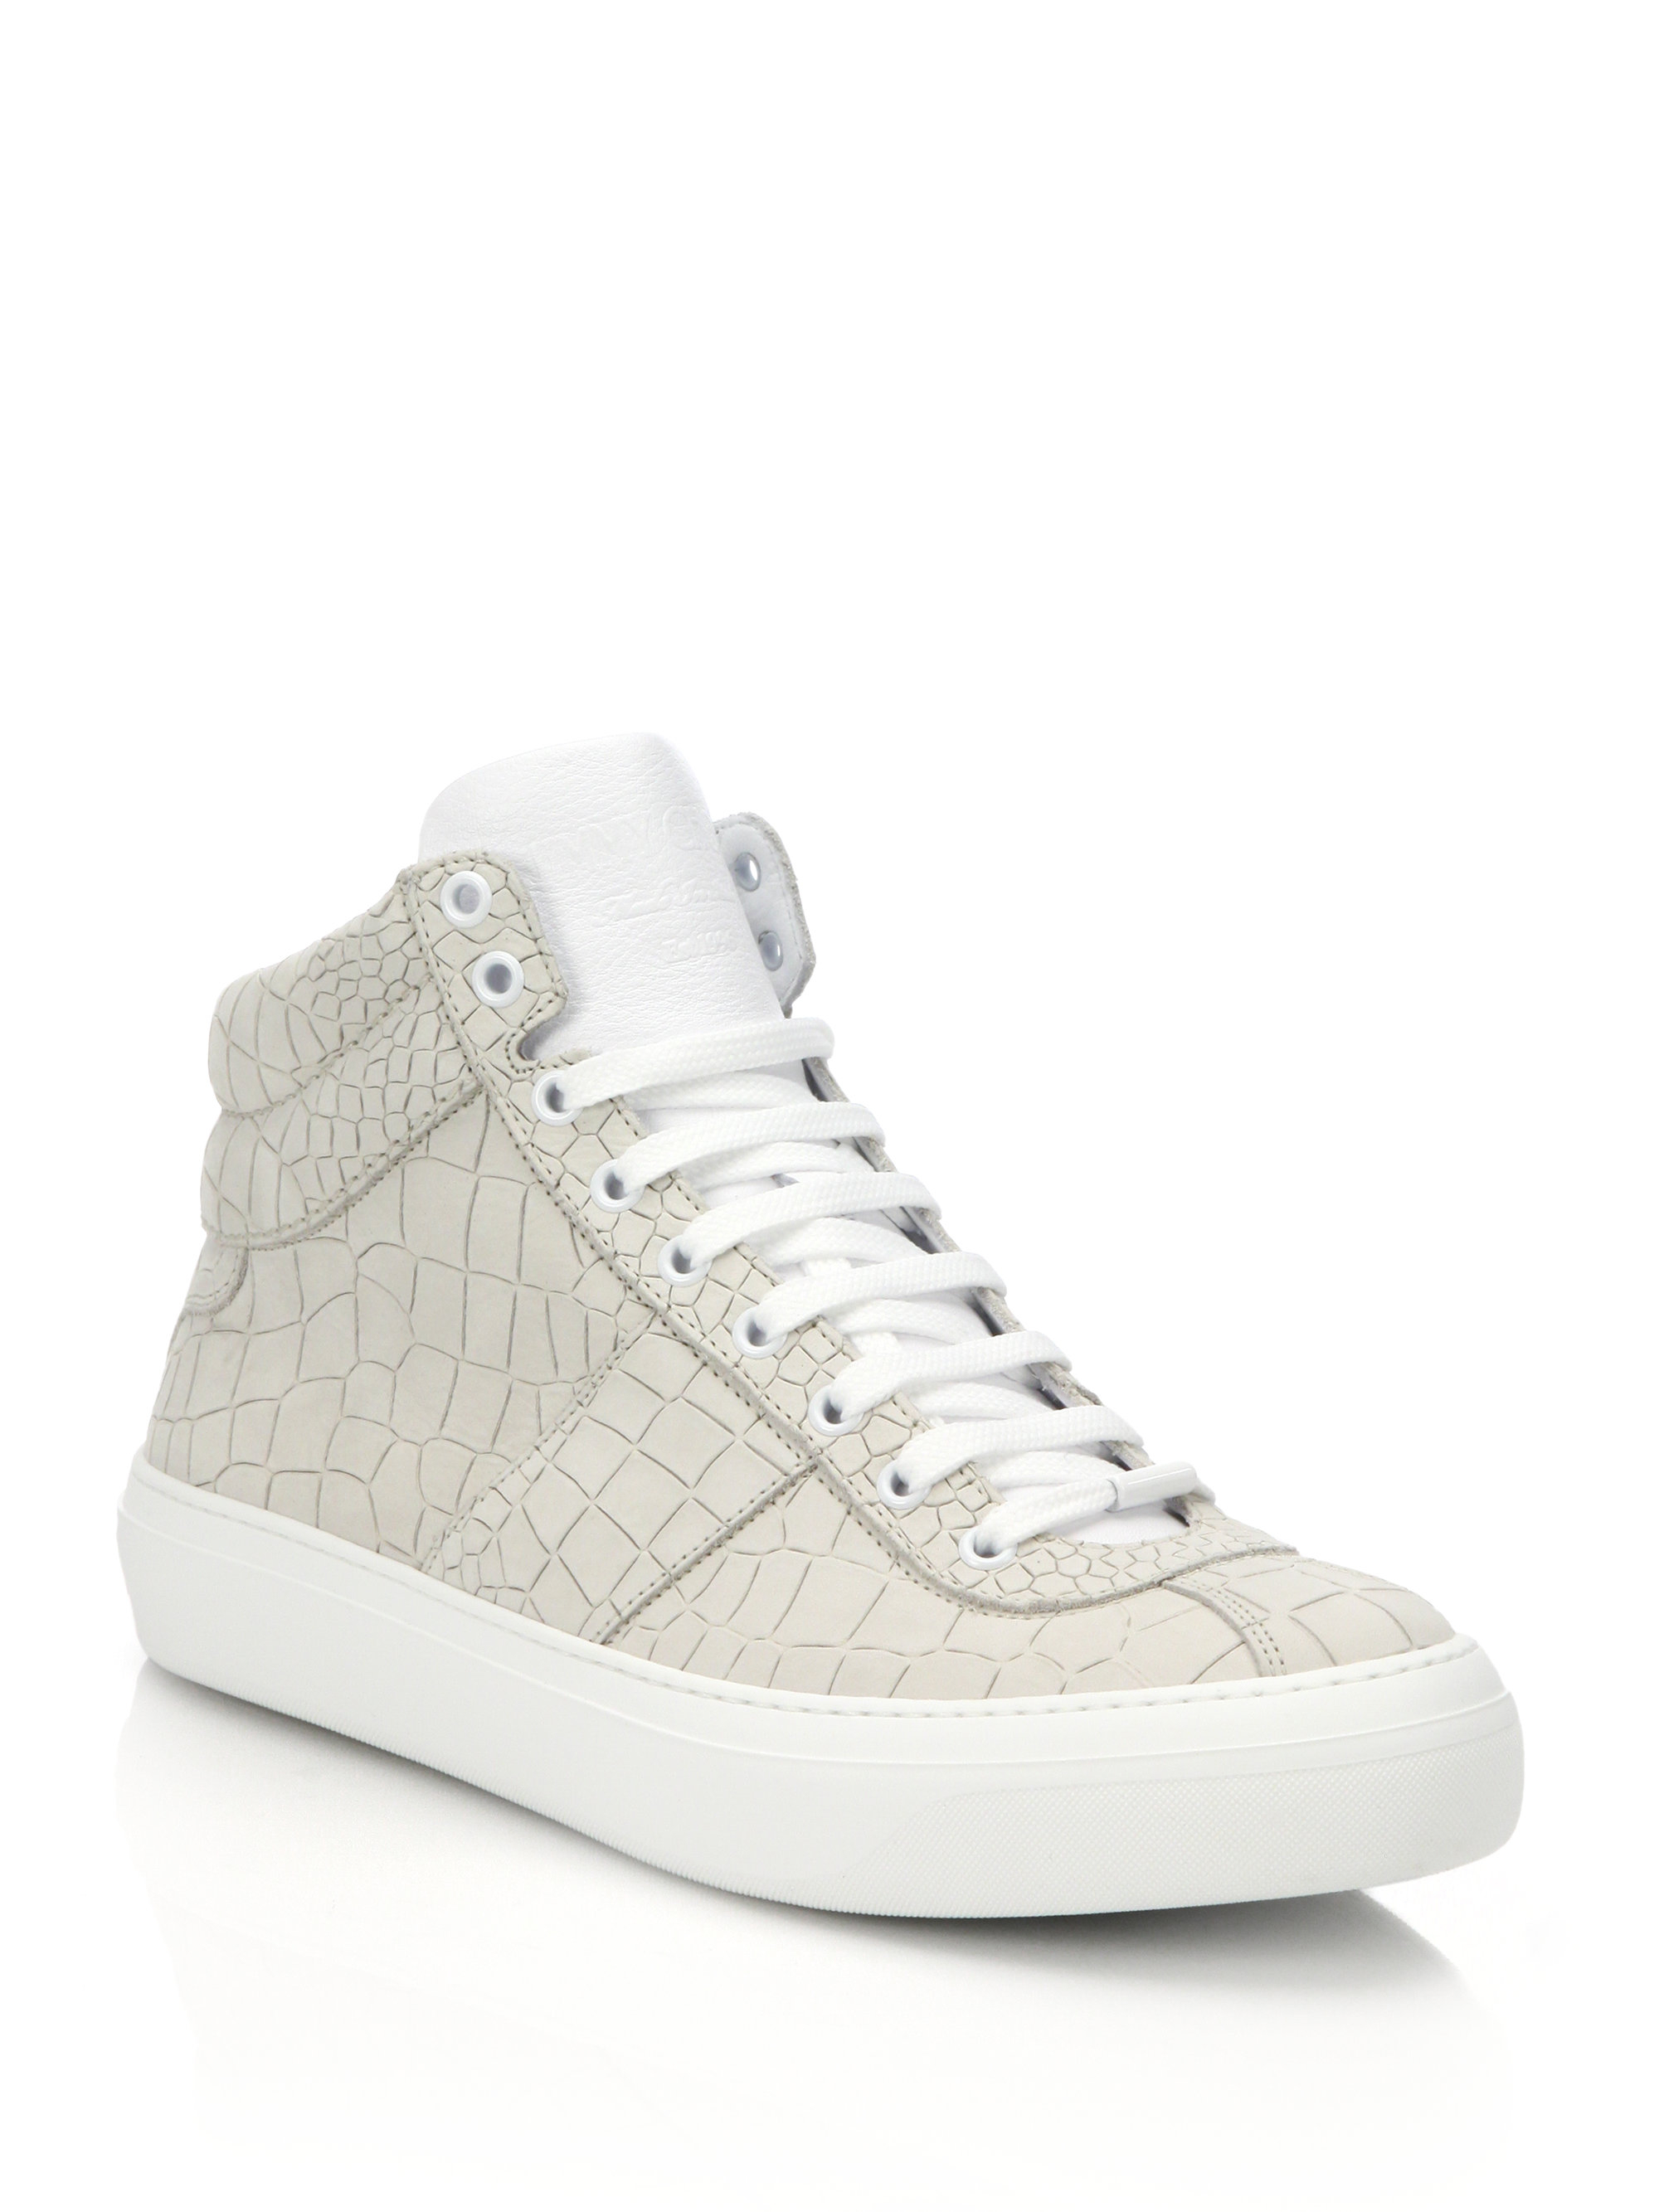 ac1708873c11 Lyst - Jimmy Choo Belgravia Croco-embossed Leather High-top Sneakers ...